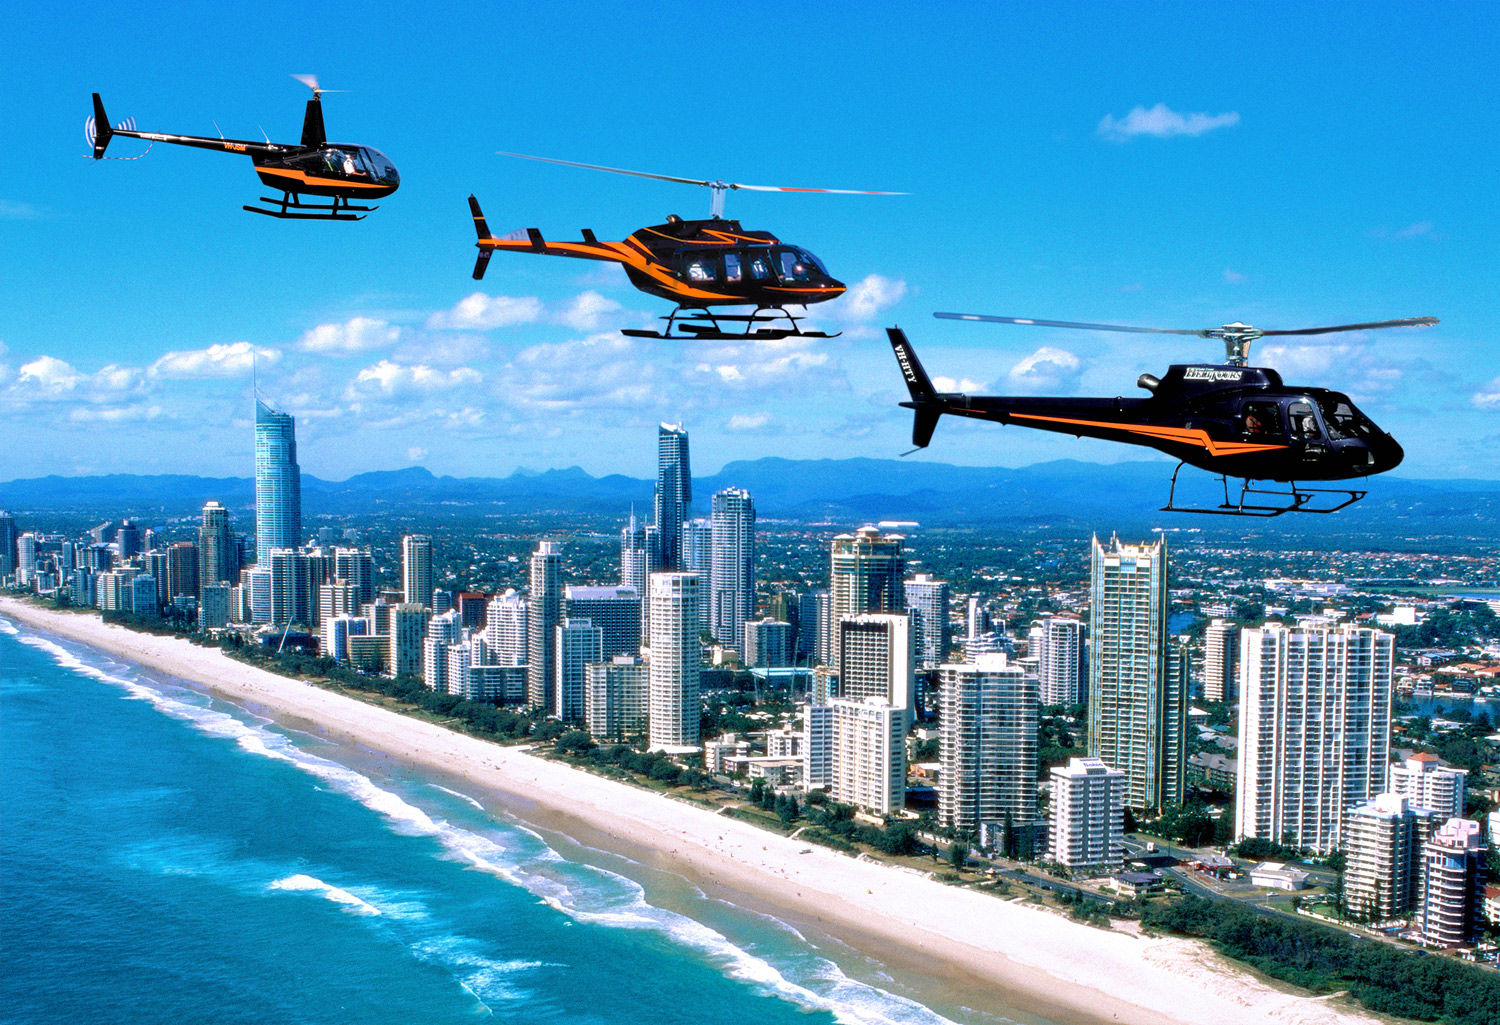 Helicopters over Surfers Paradise